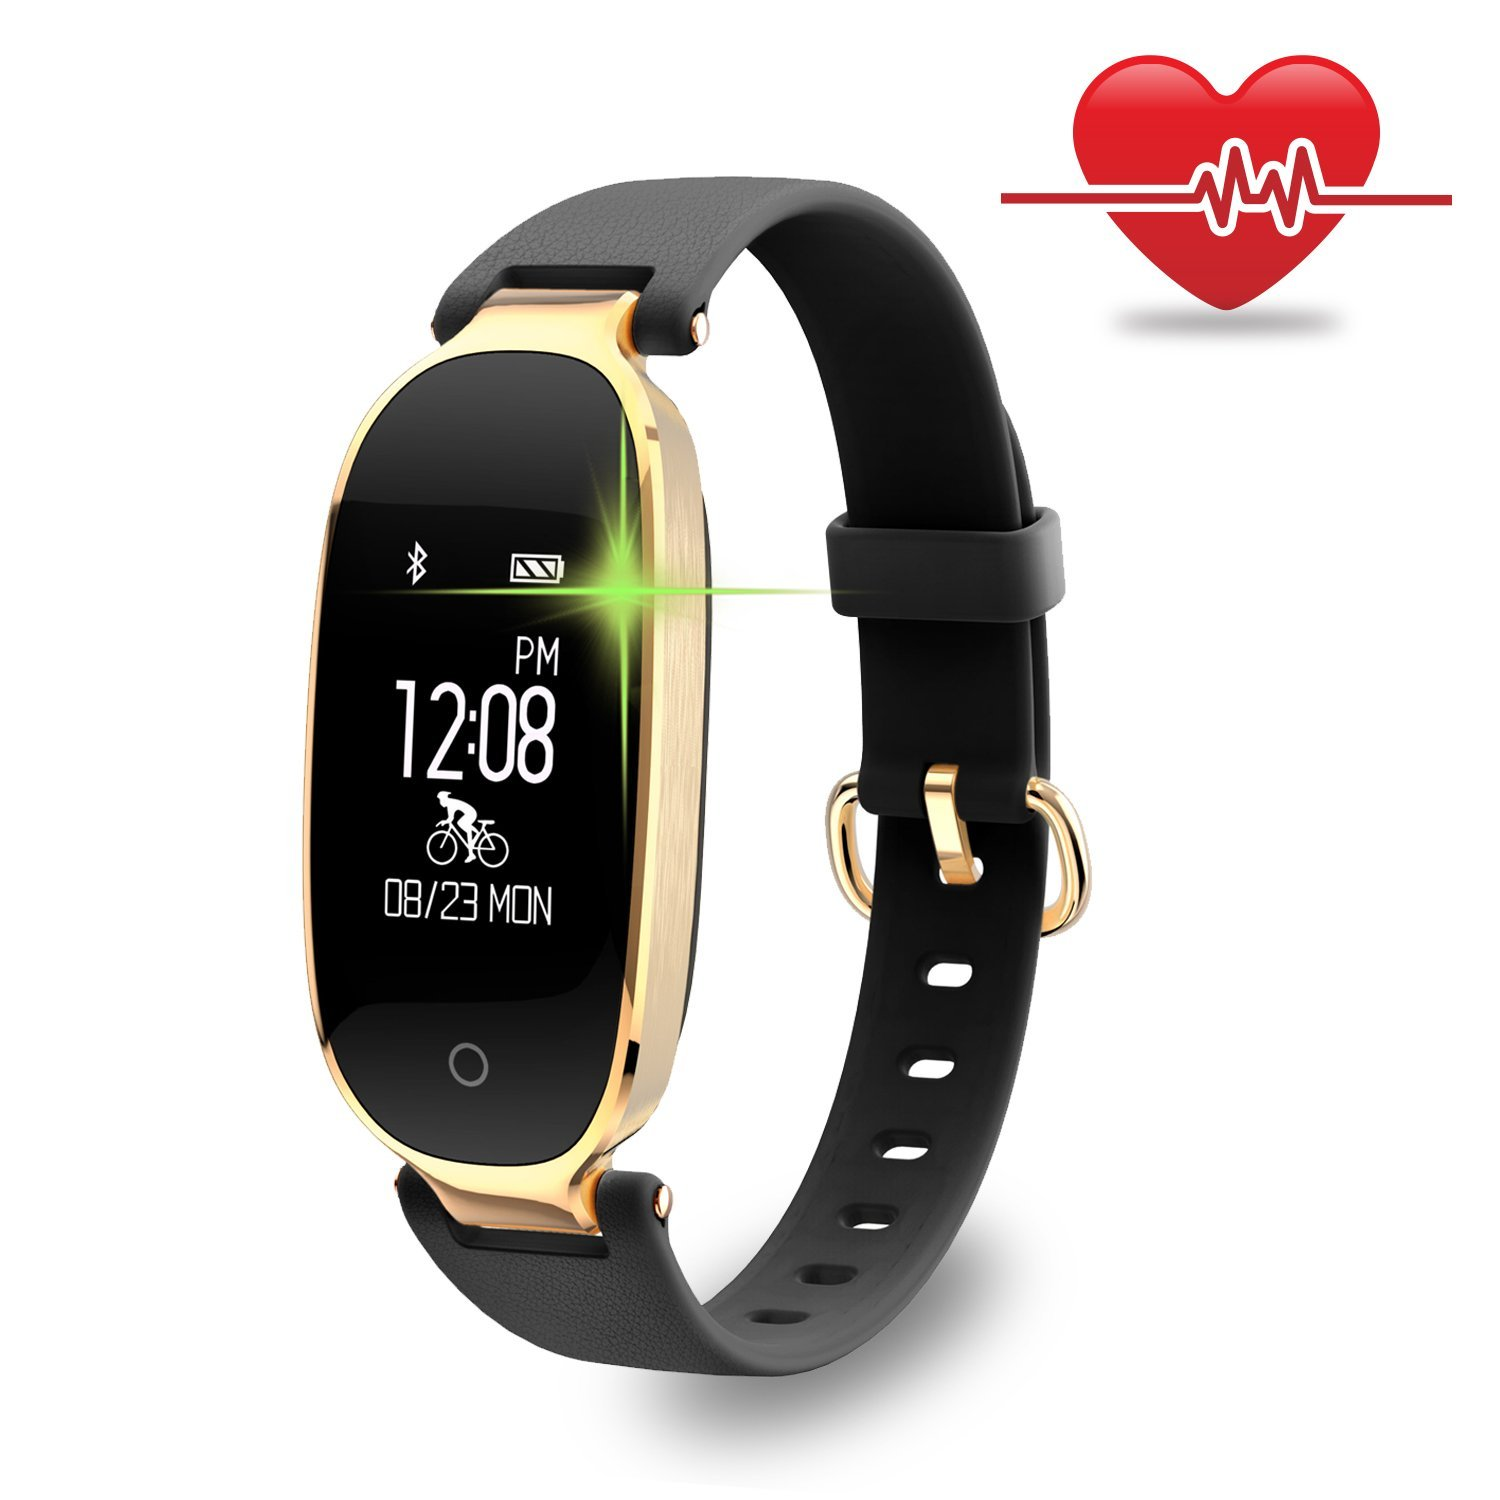 Tagital Fitness Tracker Waterproof Activity Tracker Heart Rate Monitor Sleep Monitor Pedometer Smart Watch